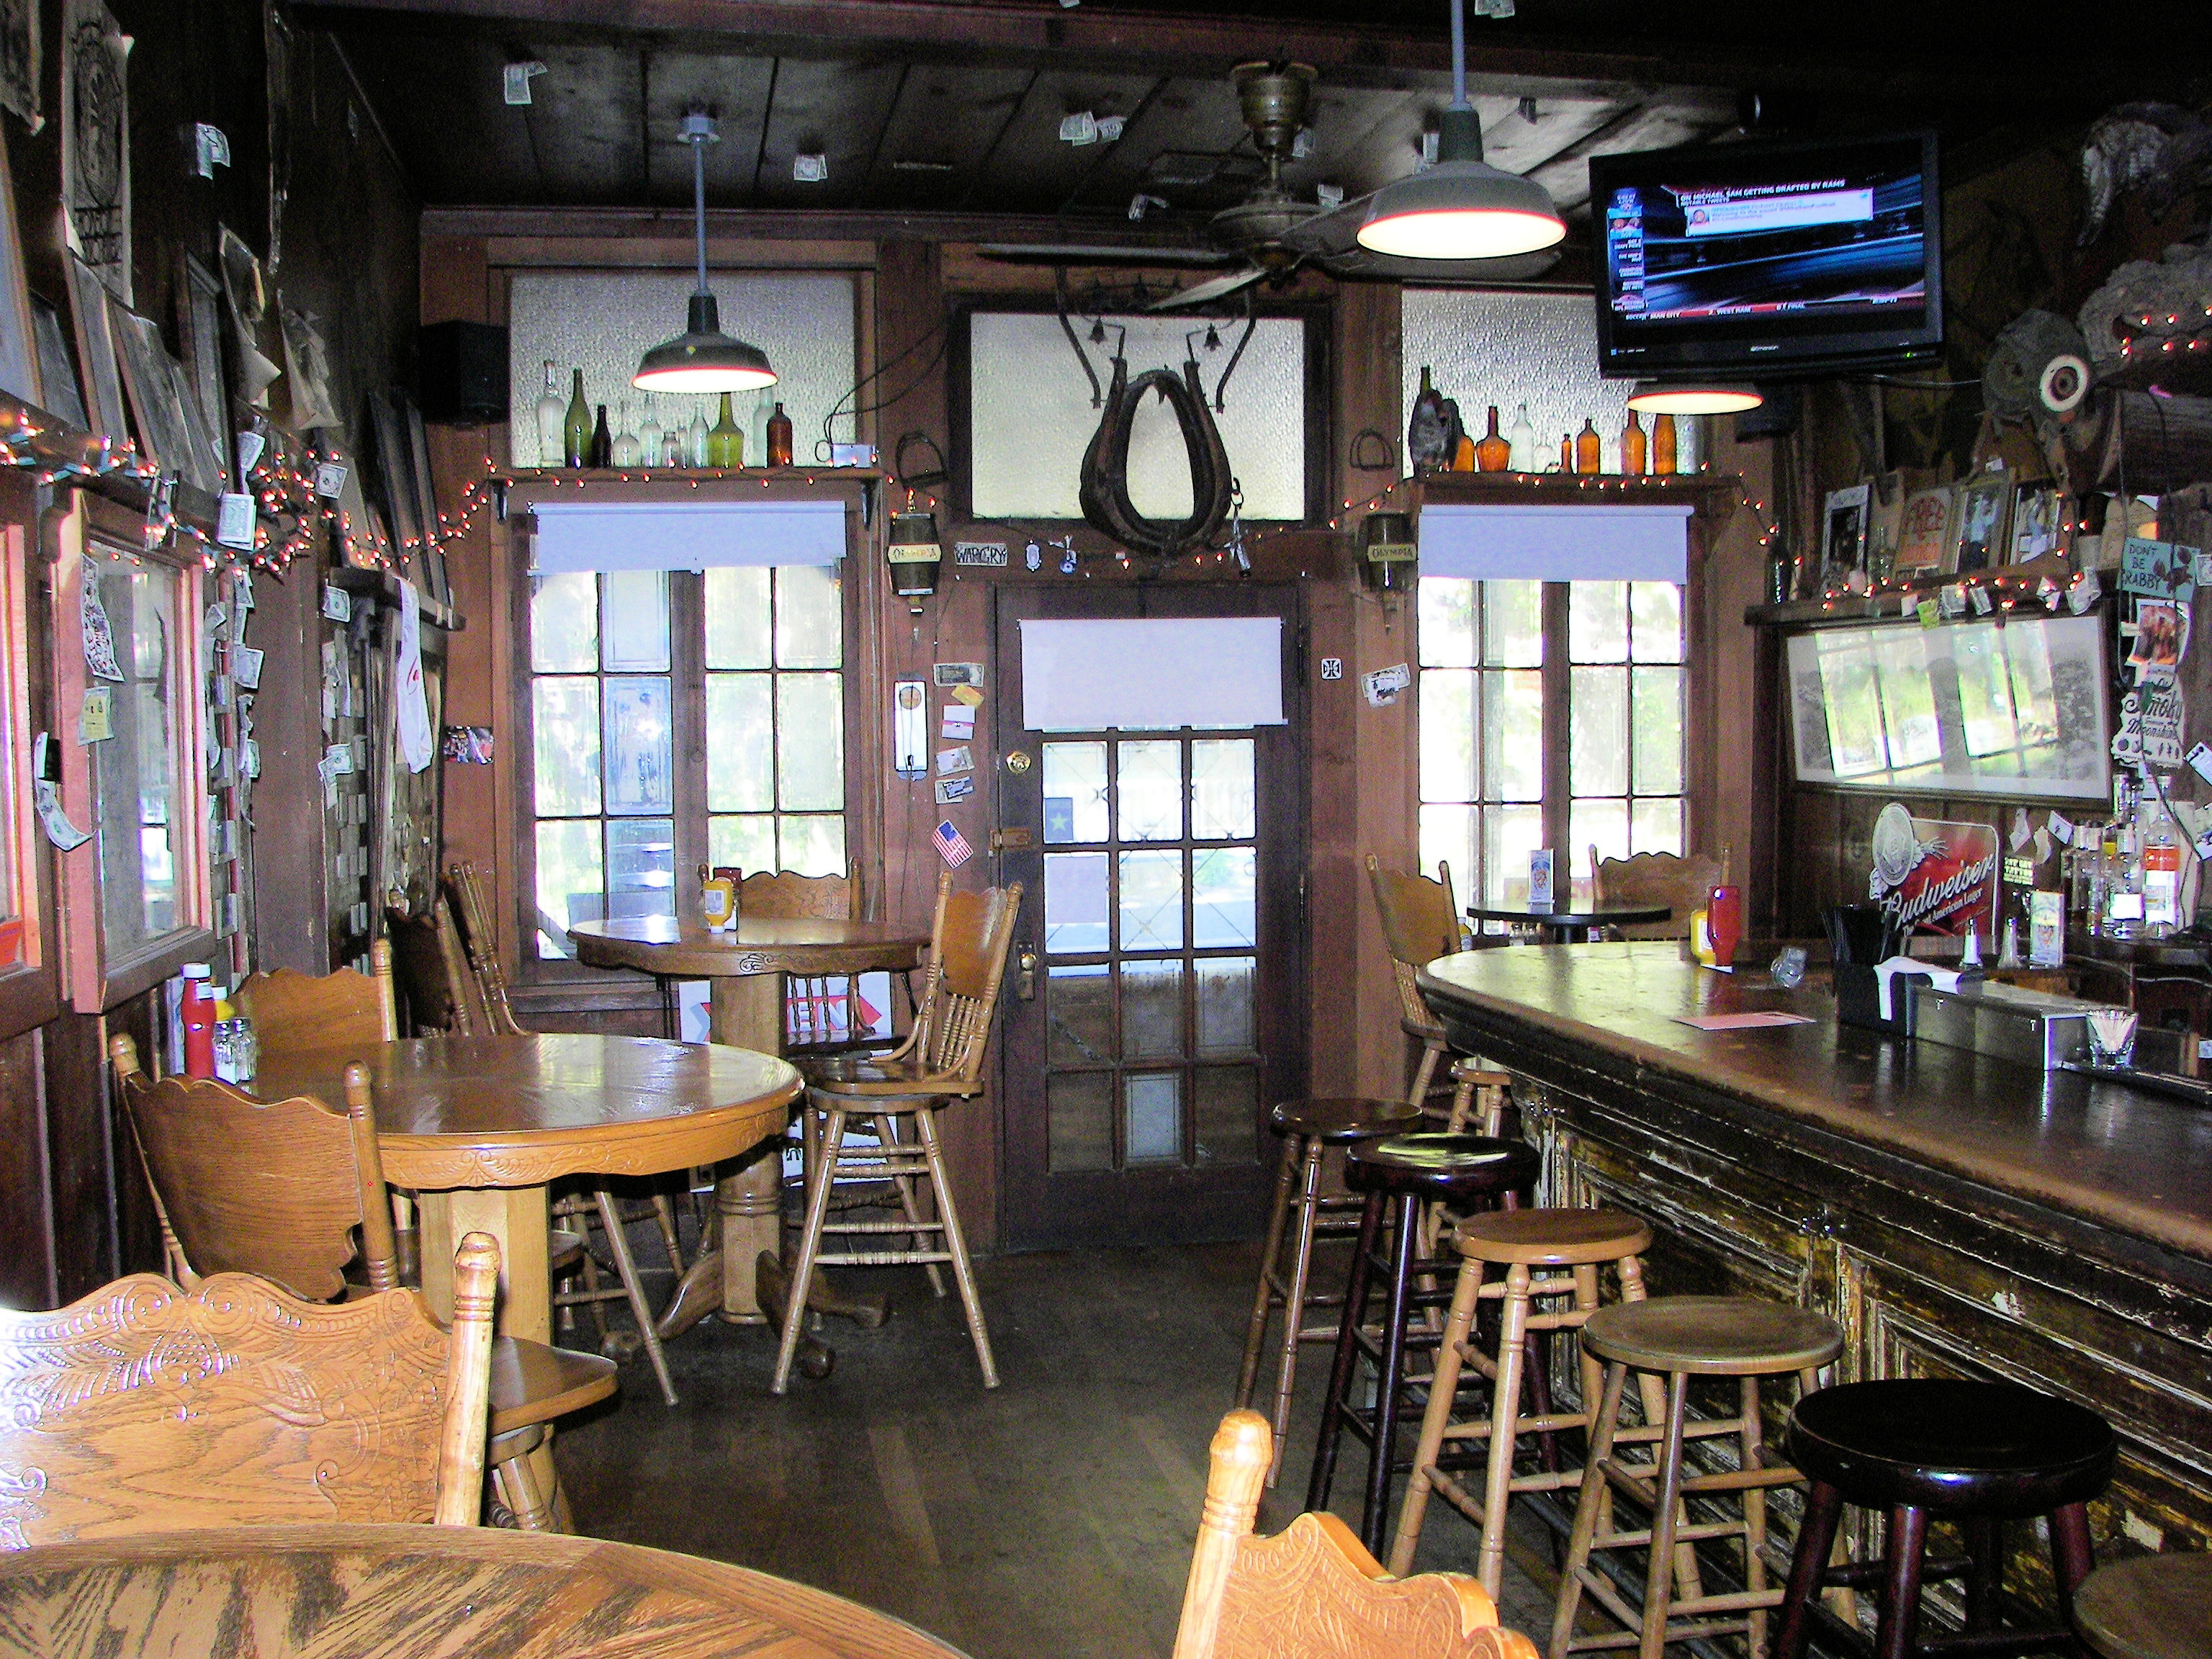 Inside The Whiskey Flat Saloon